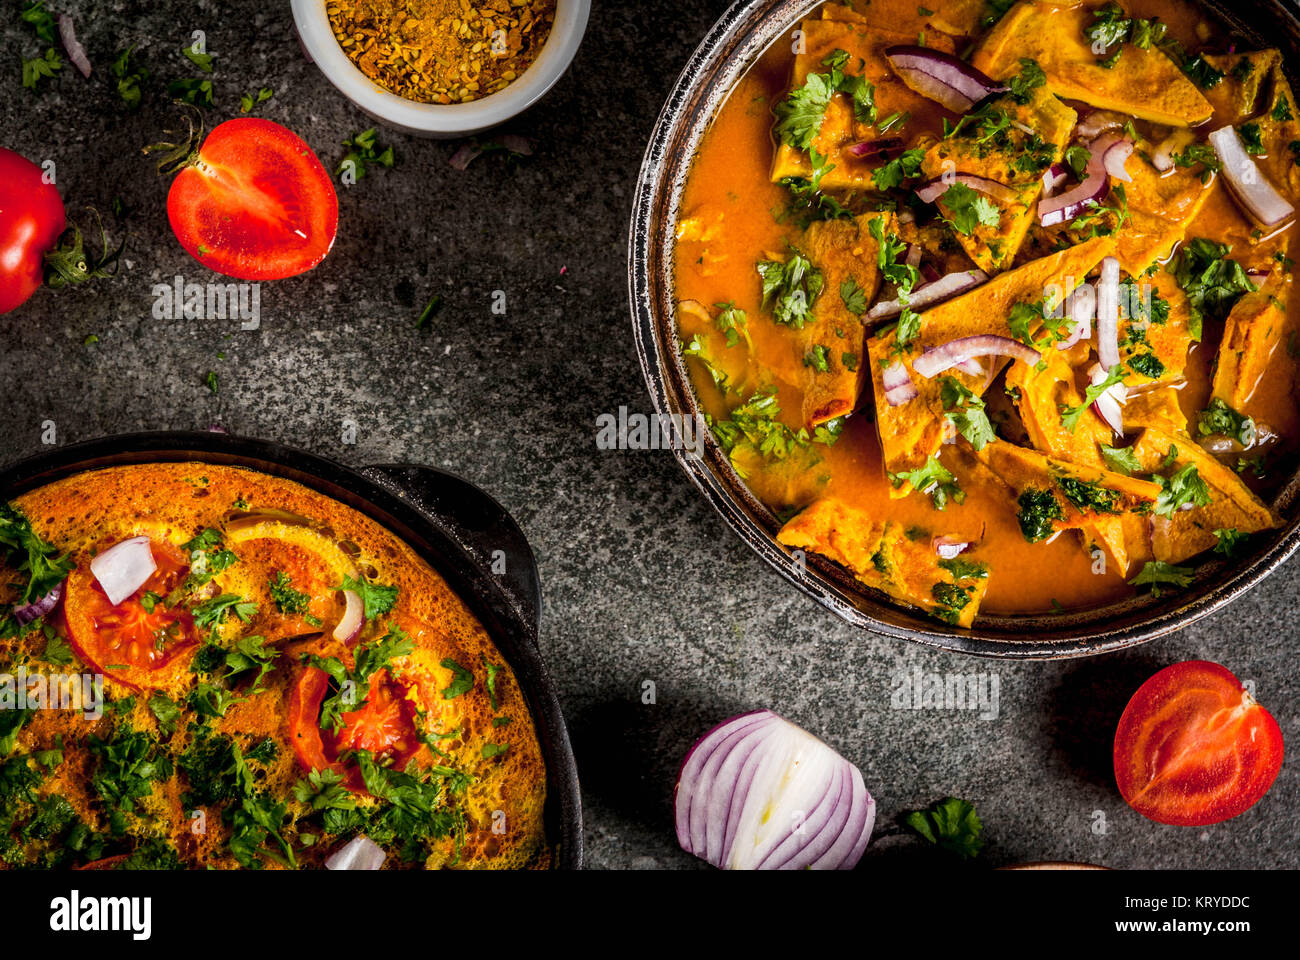 Indian food recipes, Masala Omelette with and Indian Omelet Masala Egg Curry, with fresh vegetables - tomato, hot Stock Photo